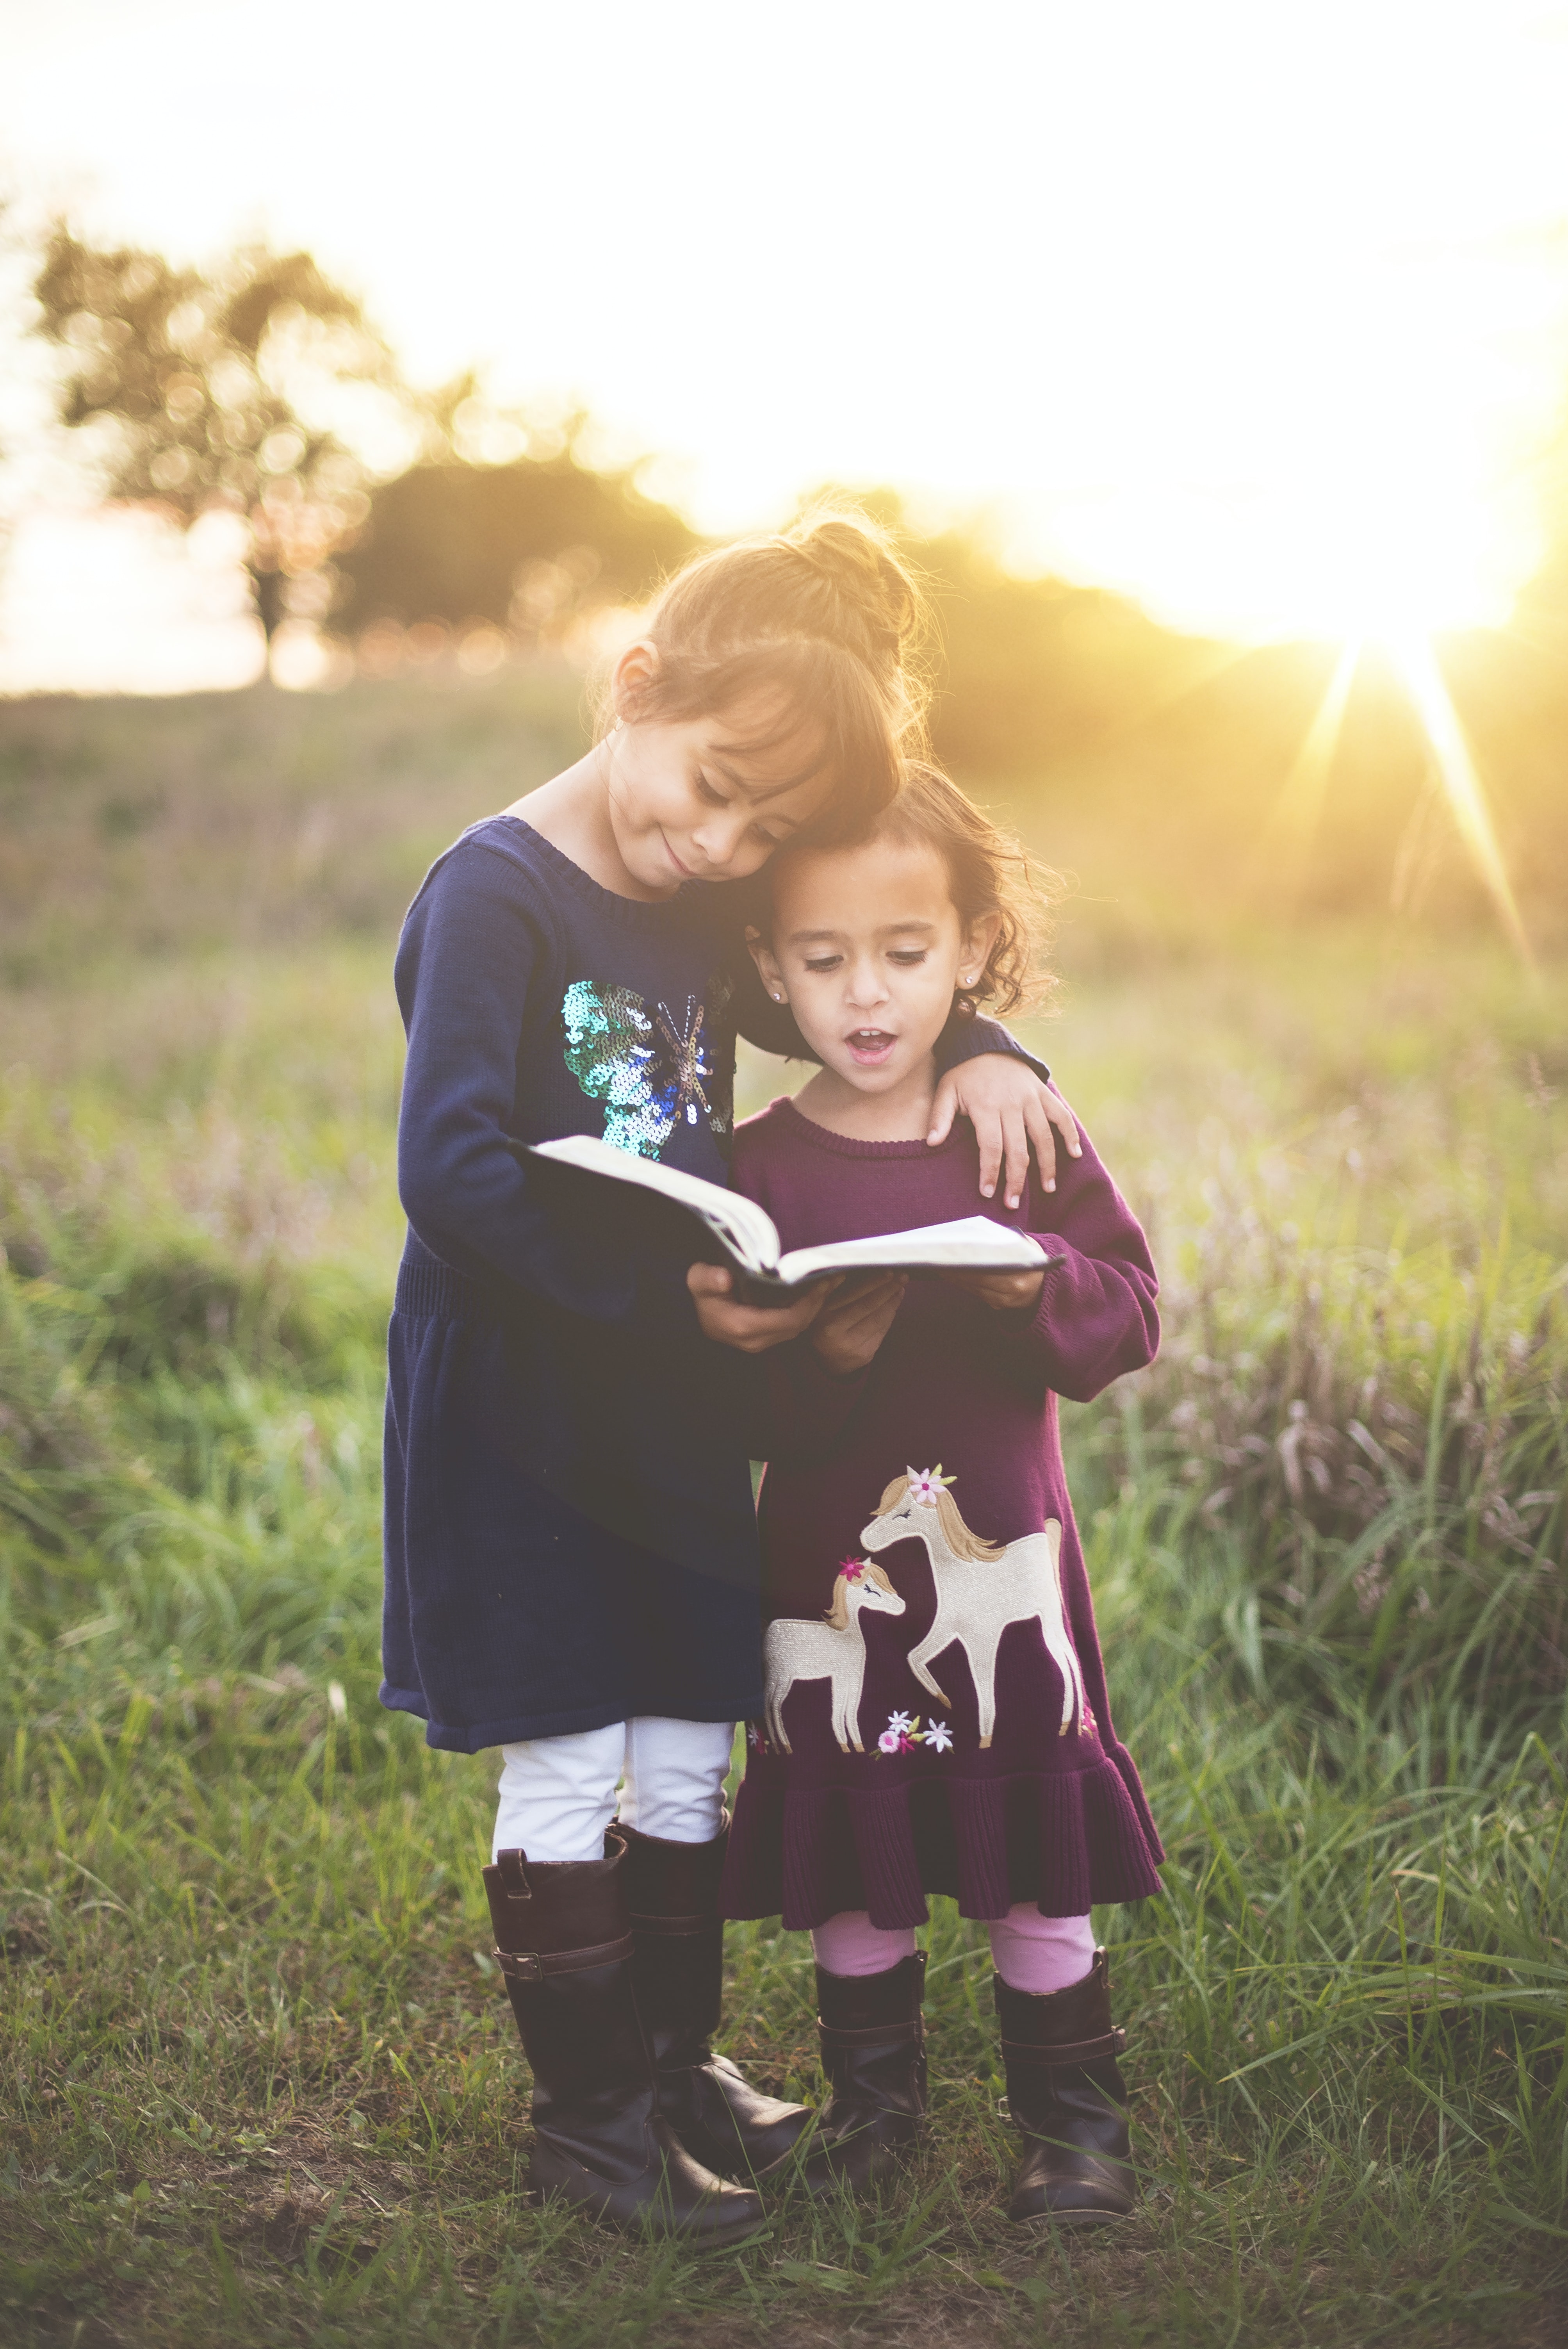 Two young girls stand reading from a book outdoors in the sun